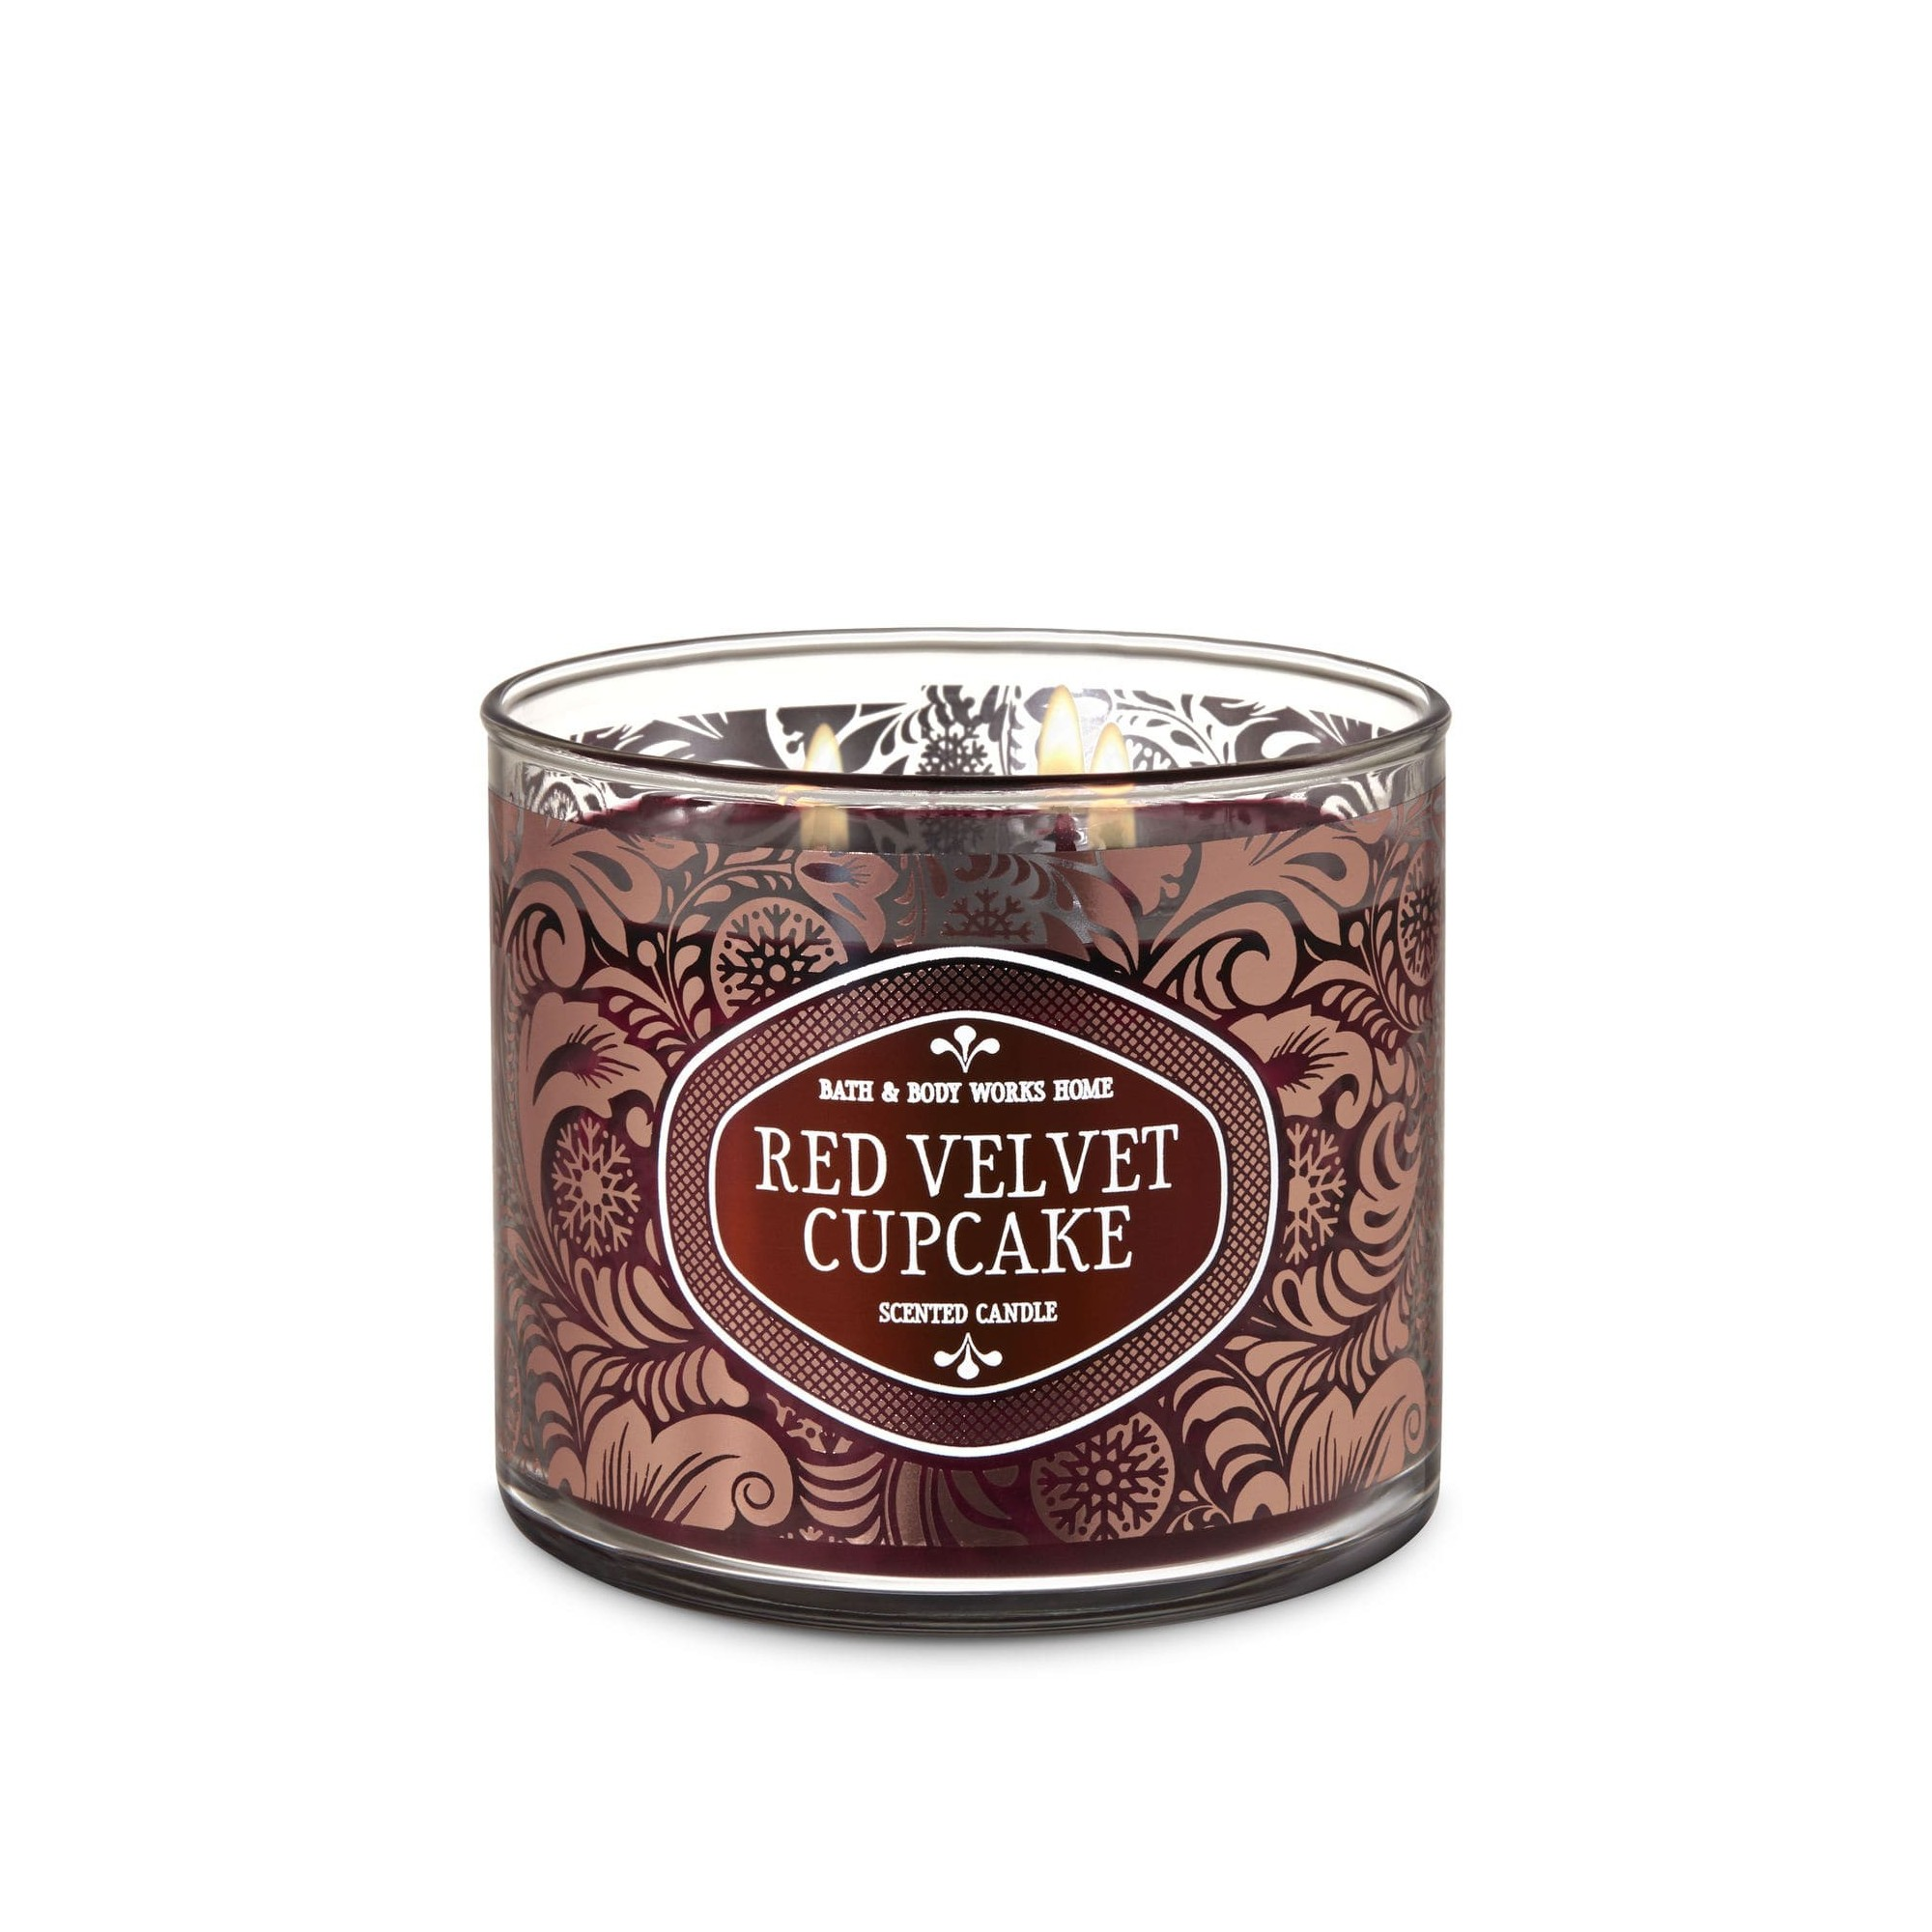 Bath & Body Works Red Velvet Cupcake 3 Wick Scented Candle